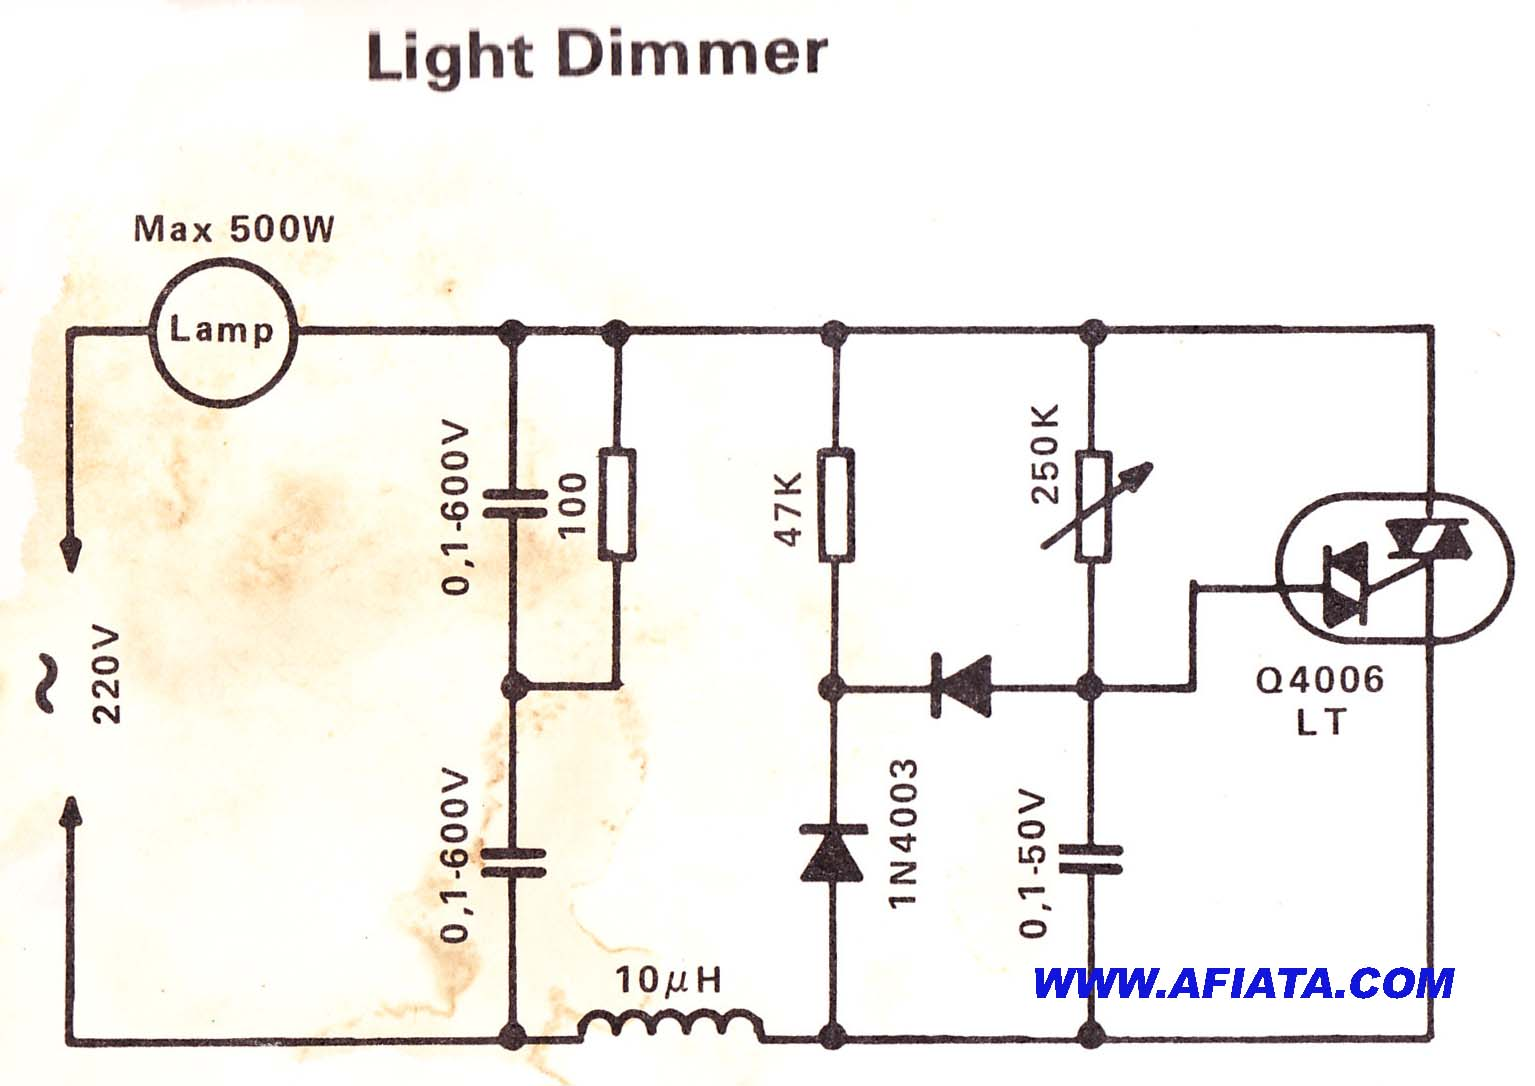 Simple Light Dimmer Diagram Web About Wiring Circuit Electronic And Layout Rh Afiata Com Switch Installation